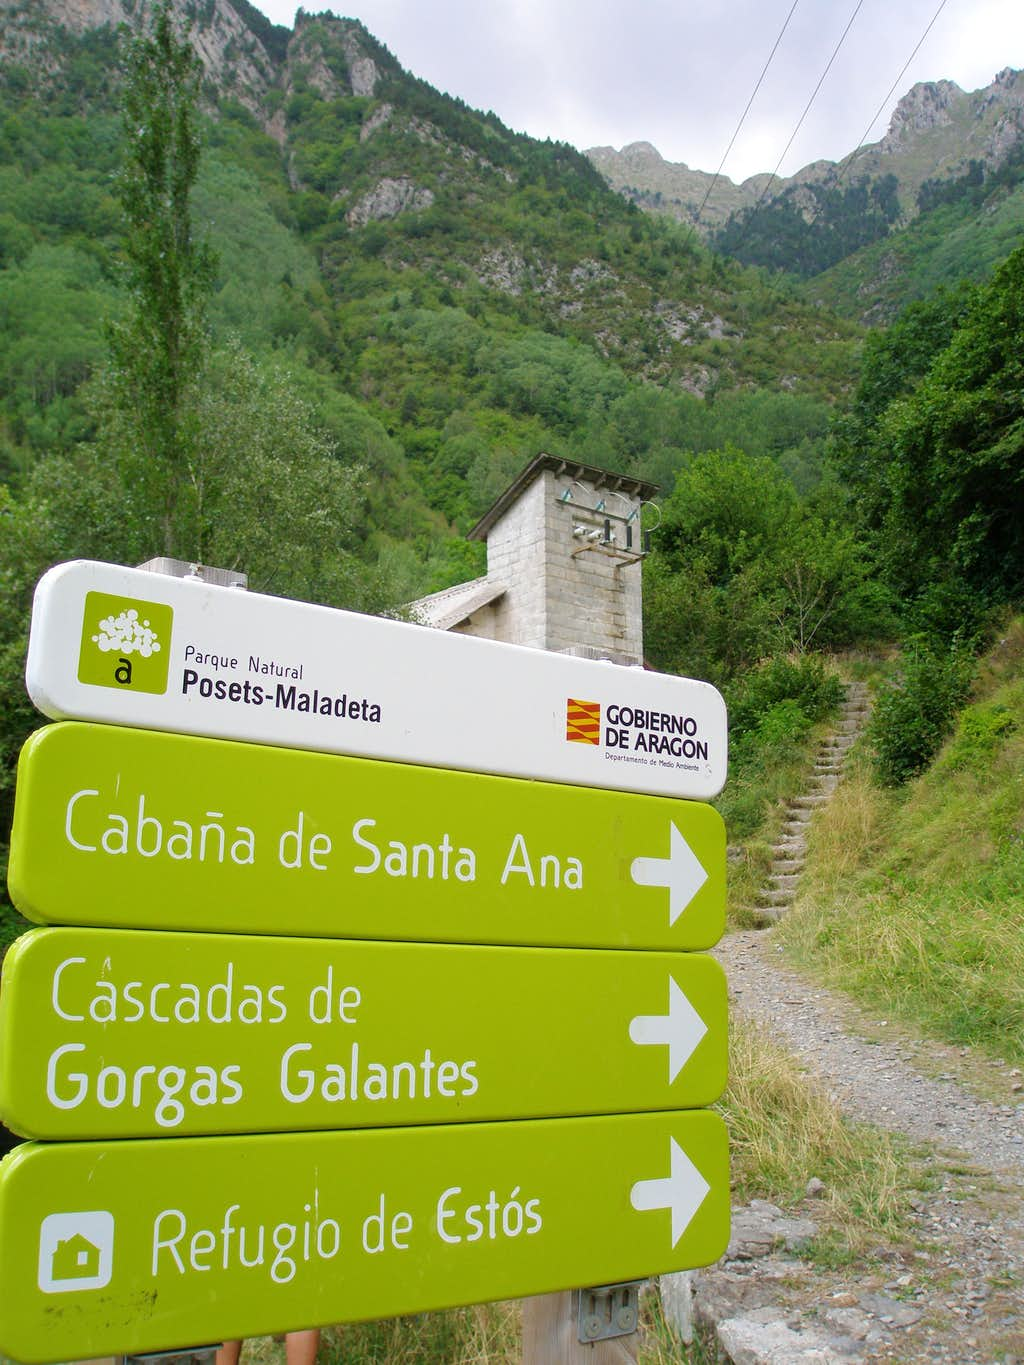 Entrance to the valley of Estós